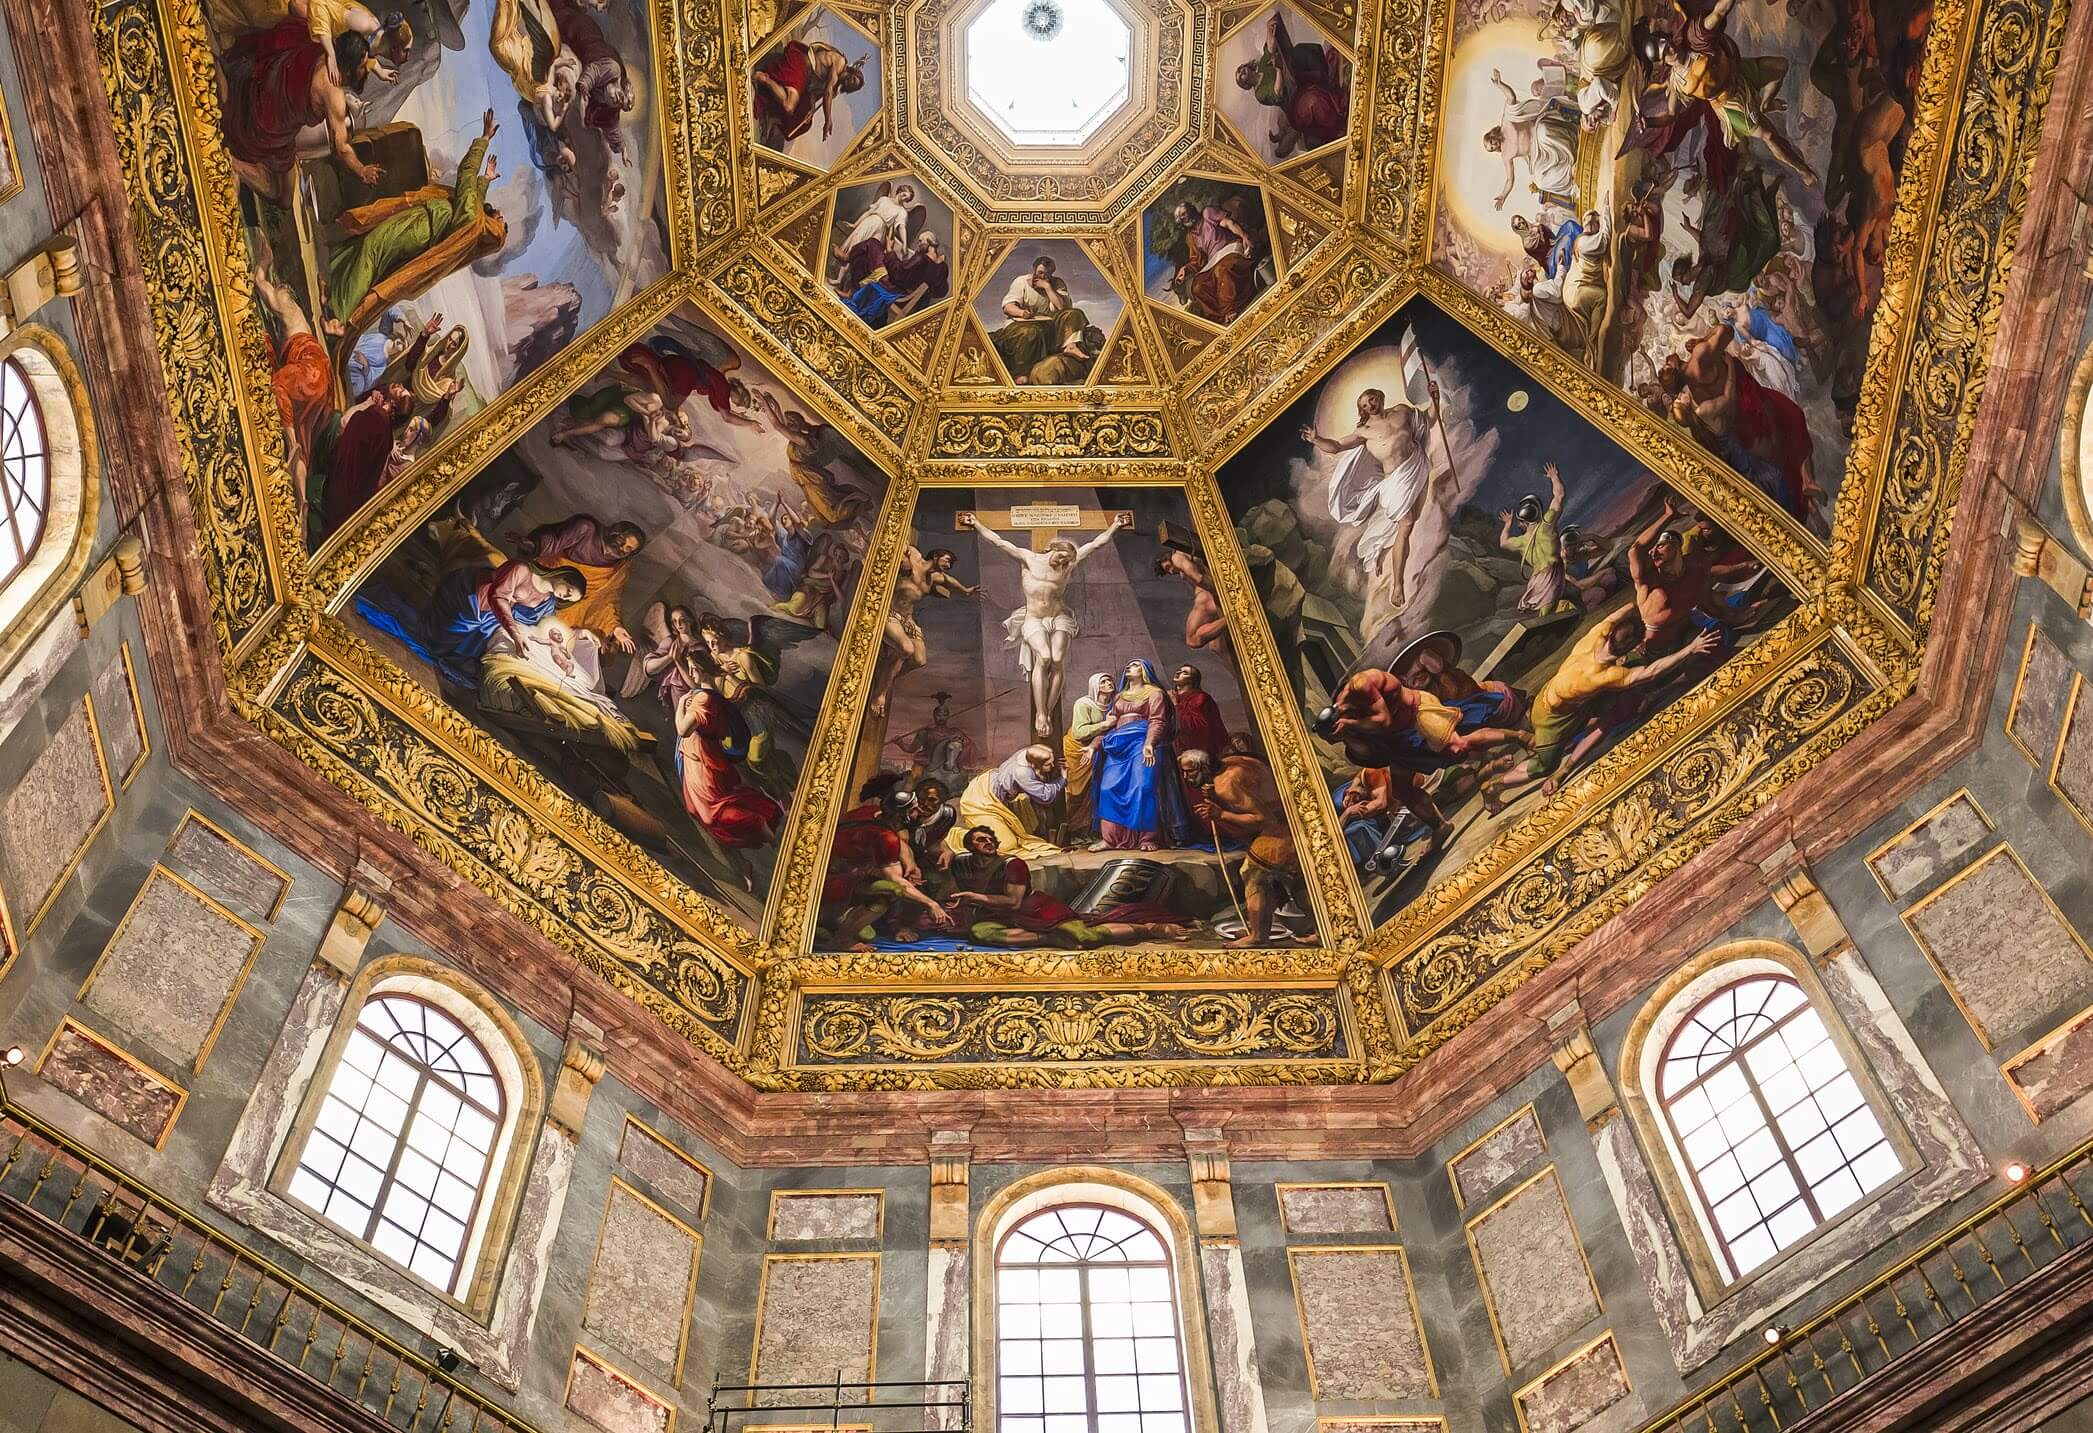 Art on the ceiling of the Medici chapel in Florence